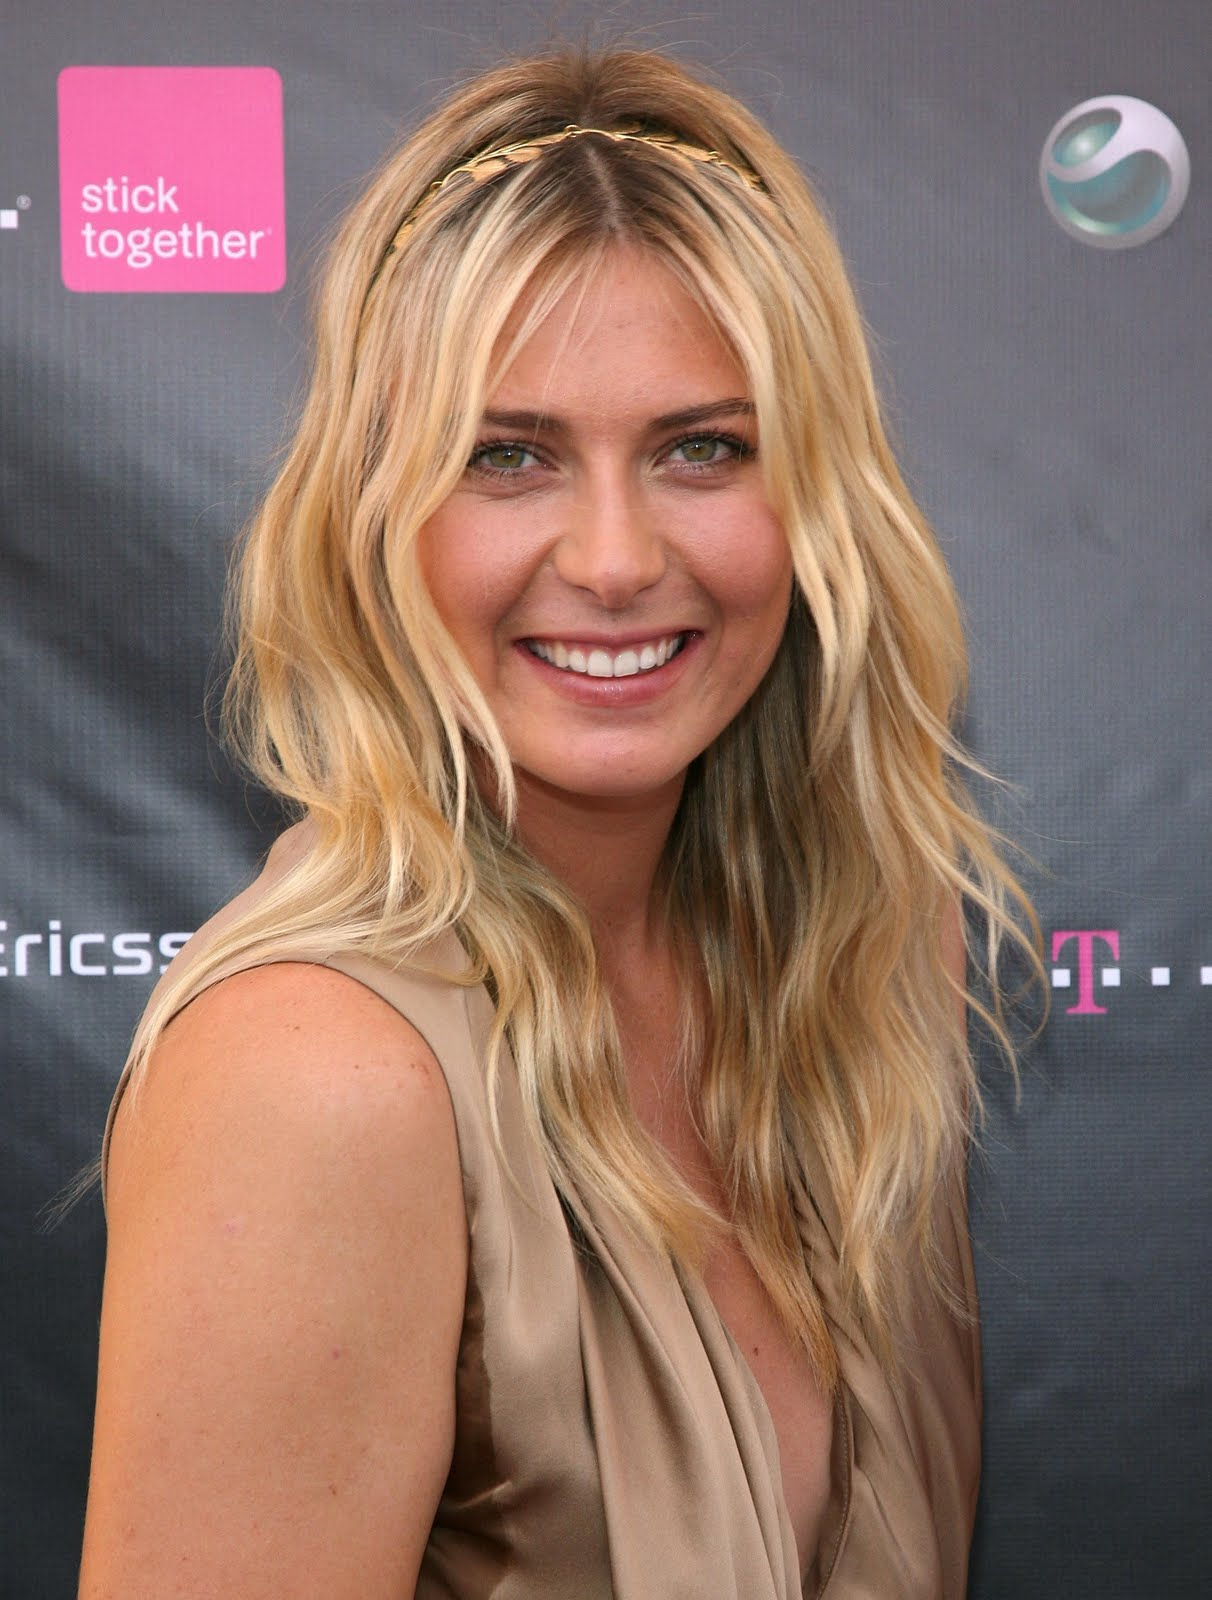 http://1.bp.blogspot.com/_b75UL5G9BPA/SwNnHXD2oWI/AAAAAAAAHxk/0HRn0DuUmWc/s1600/78718_ie_-_Maria_Sharapova_at_the_T-Mobile_and_Sony_Ericsson_Maria_Sharapova_Look-a-like_contest_at_the_new_T-Mobile_store_in_Canoga_Park_-_Oct__31_2009_7327_122_72lo-704979.jpg